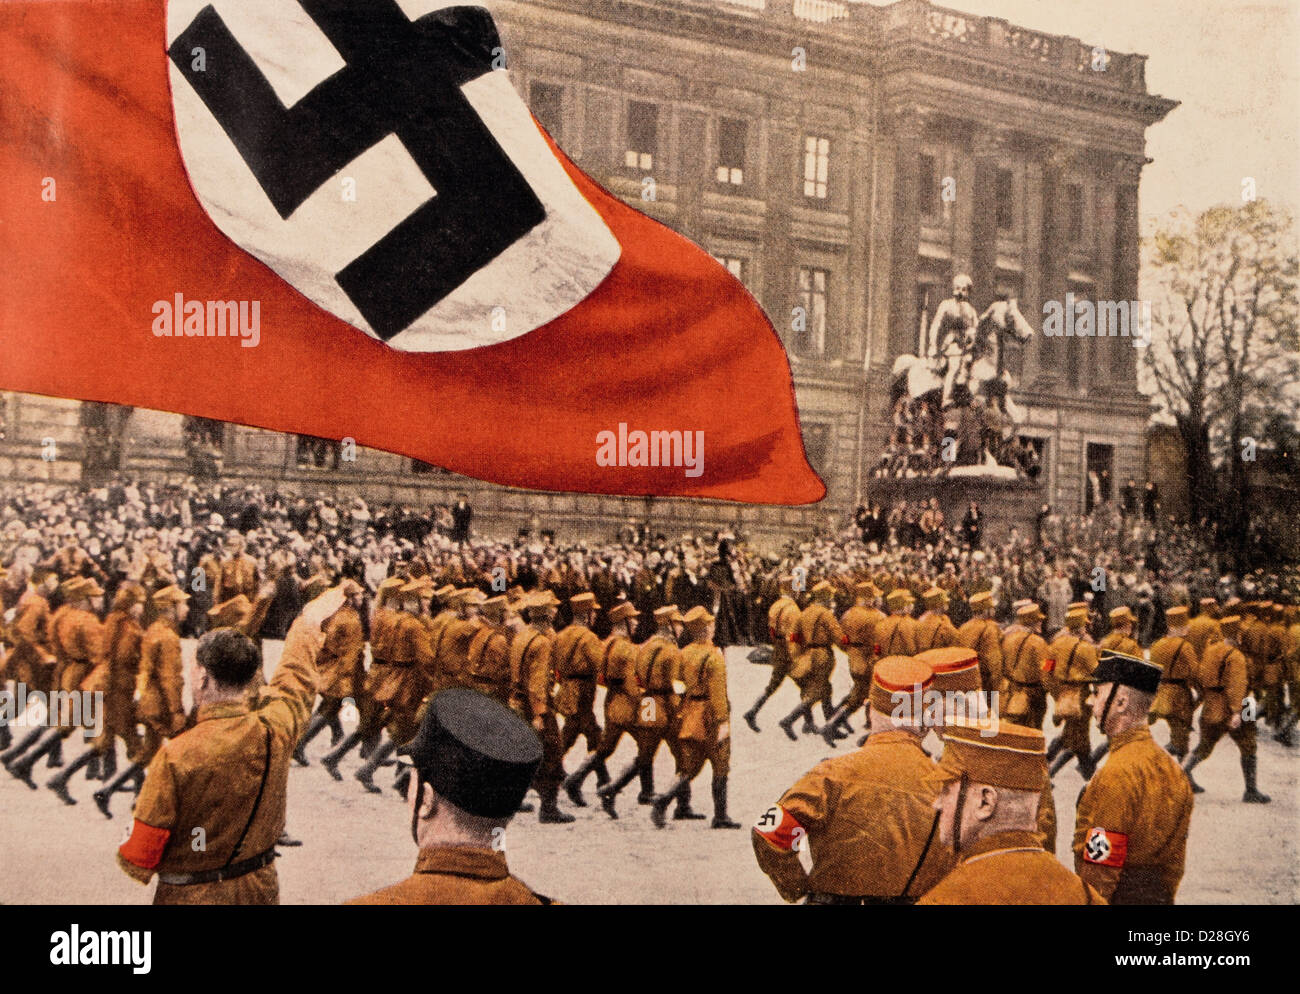 nazi germany and adolf hitler Adolf hitler was an austrian-born german politician and the leader of the nazi  party he was chancellor of germany from 1933 to 1945 and dictator of nazi.